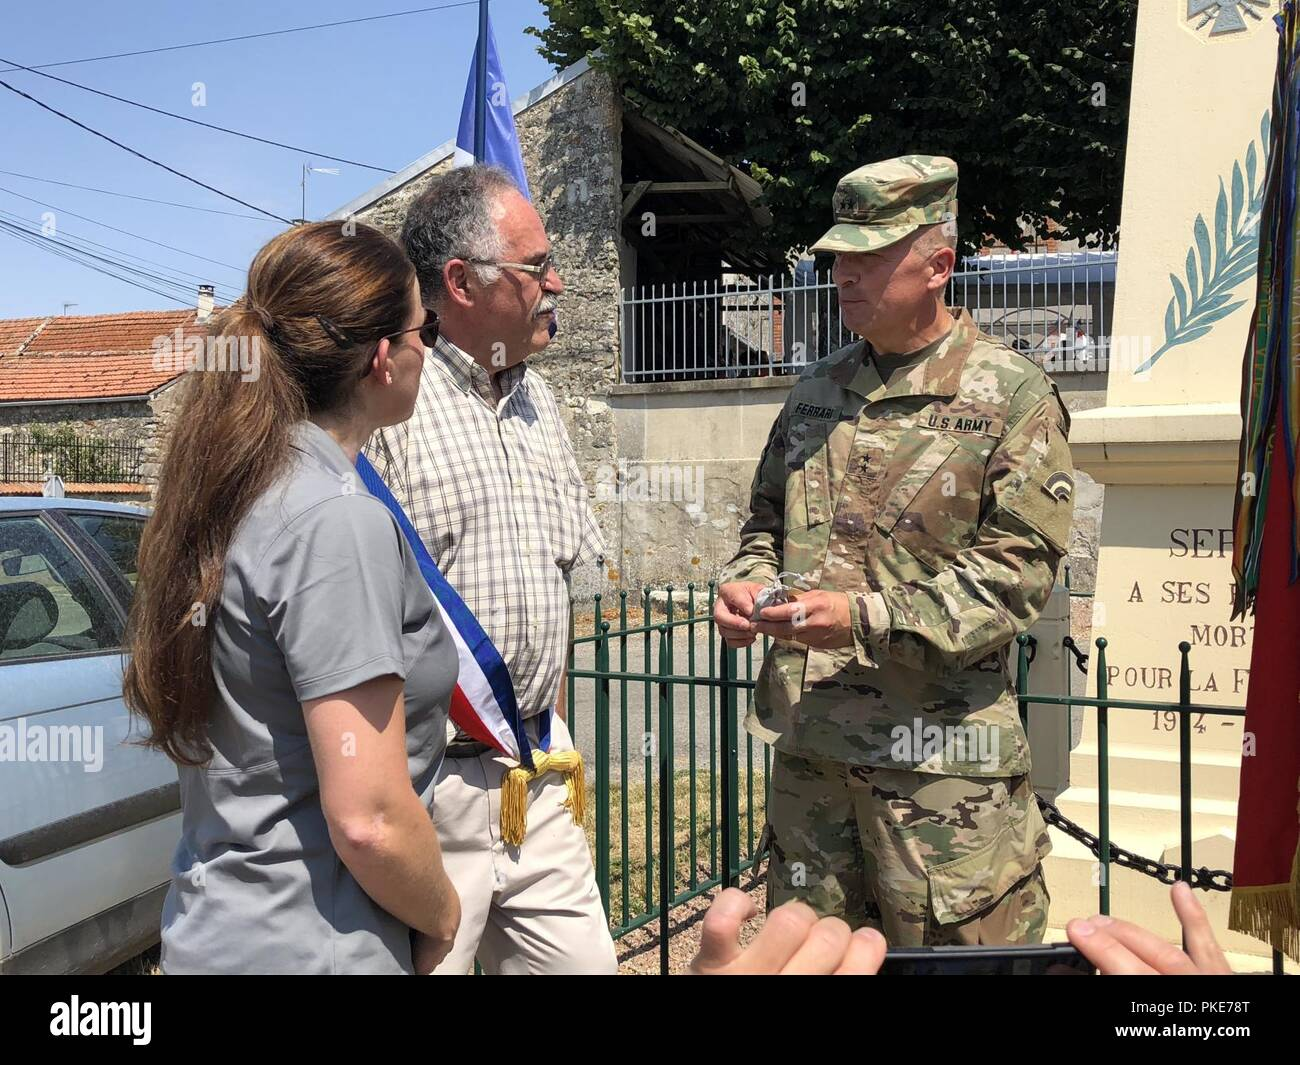 Major General Steven Ferrari the 42nd Infantry Division Commander receives a gift from the Mayor of Sergy, France on July 27, 2018. The Soldiers from the Division participated in the Croix Rouge Farm ten mile walk, some of the Soldiers started at the town of Sergy, France where the Division lost Soldiers in that town during World War One. The Croix Rouge Farm battlefield tour was a 10-mile road march of historic sites of the Rainbow Division's first offensive actions from July 25-30, 1918. The assault of the division was part of the first allied attack across a 25-mile front near Soissons and  - Stock Image